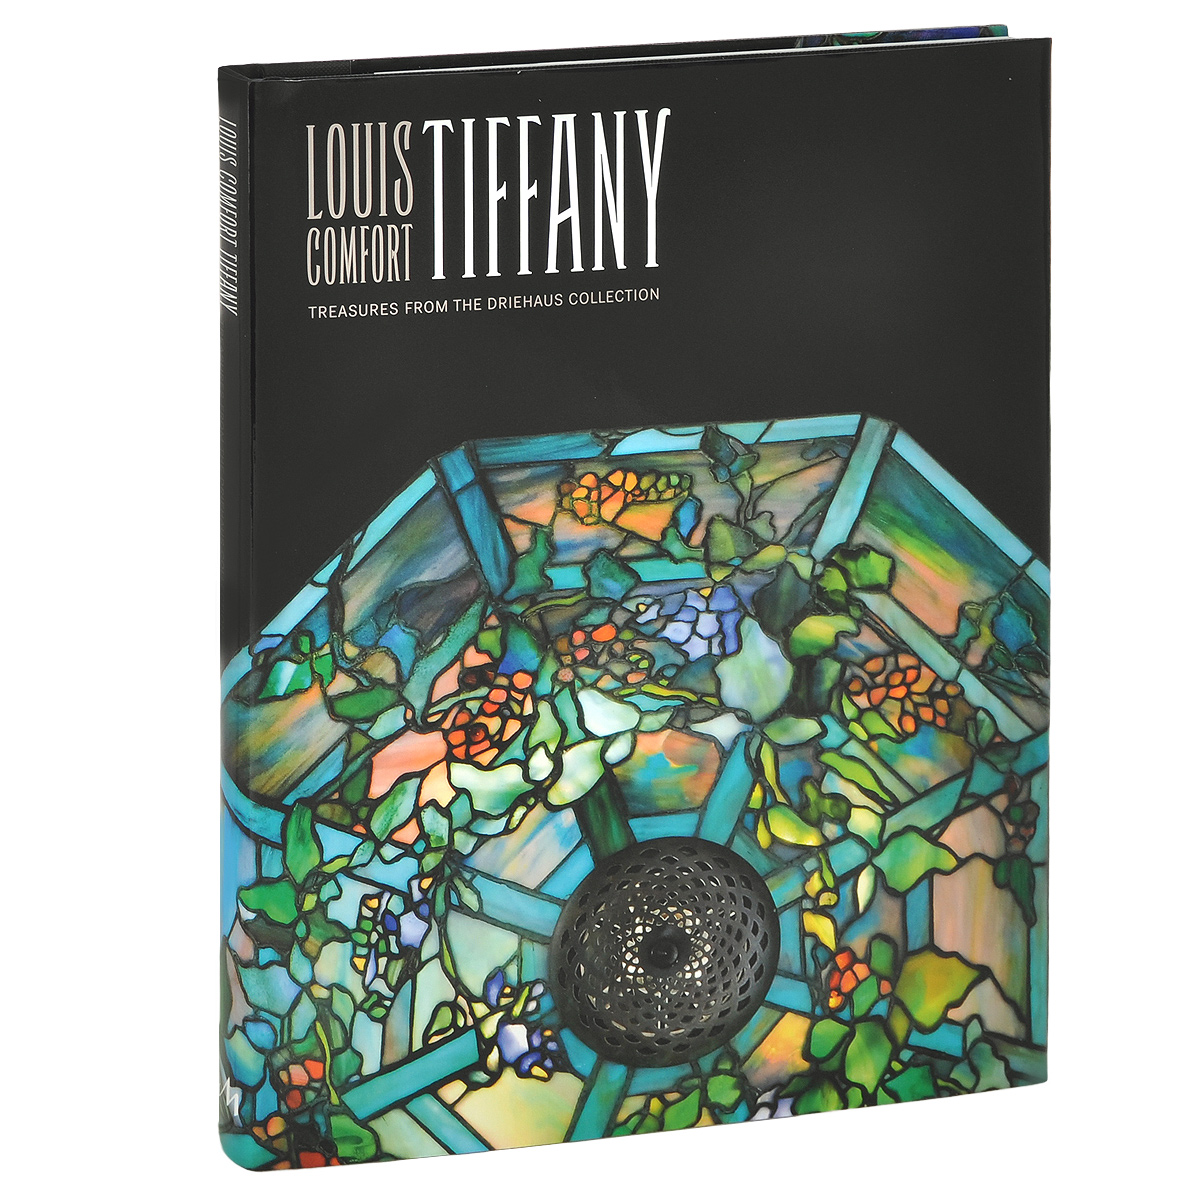 Louis Comfort Tiffany: Treasures from the Driehaus Collection the art treasures from mosсow museums